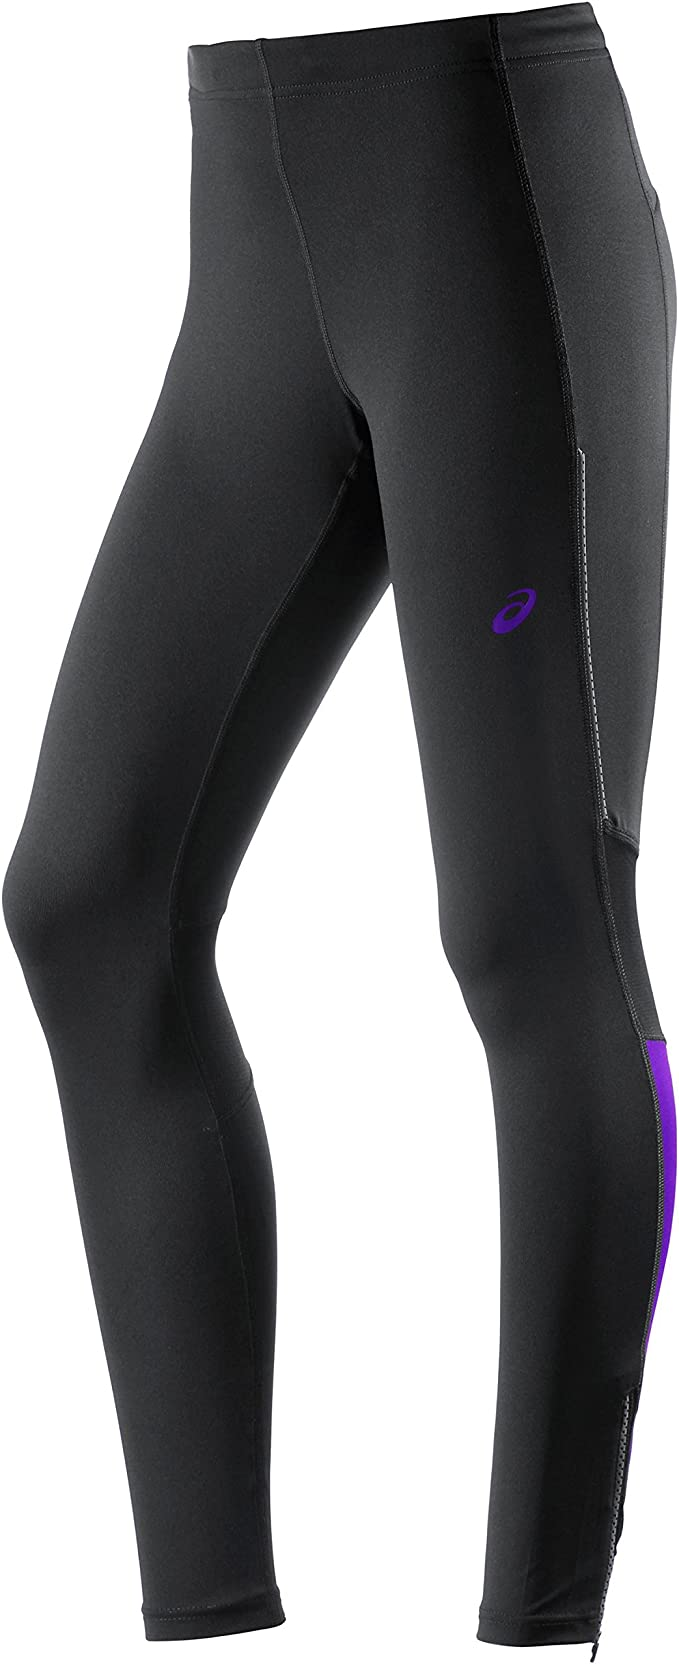 Adrenaline Ladies Knee Running Tights